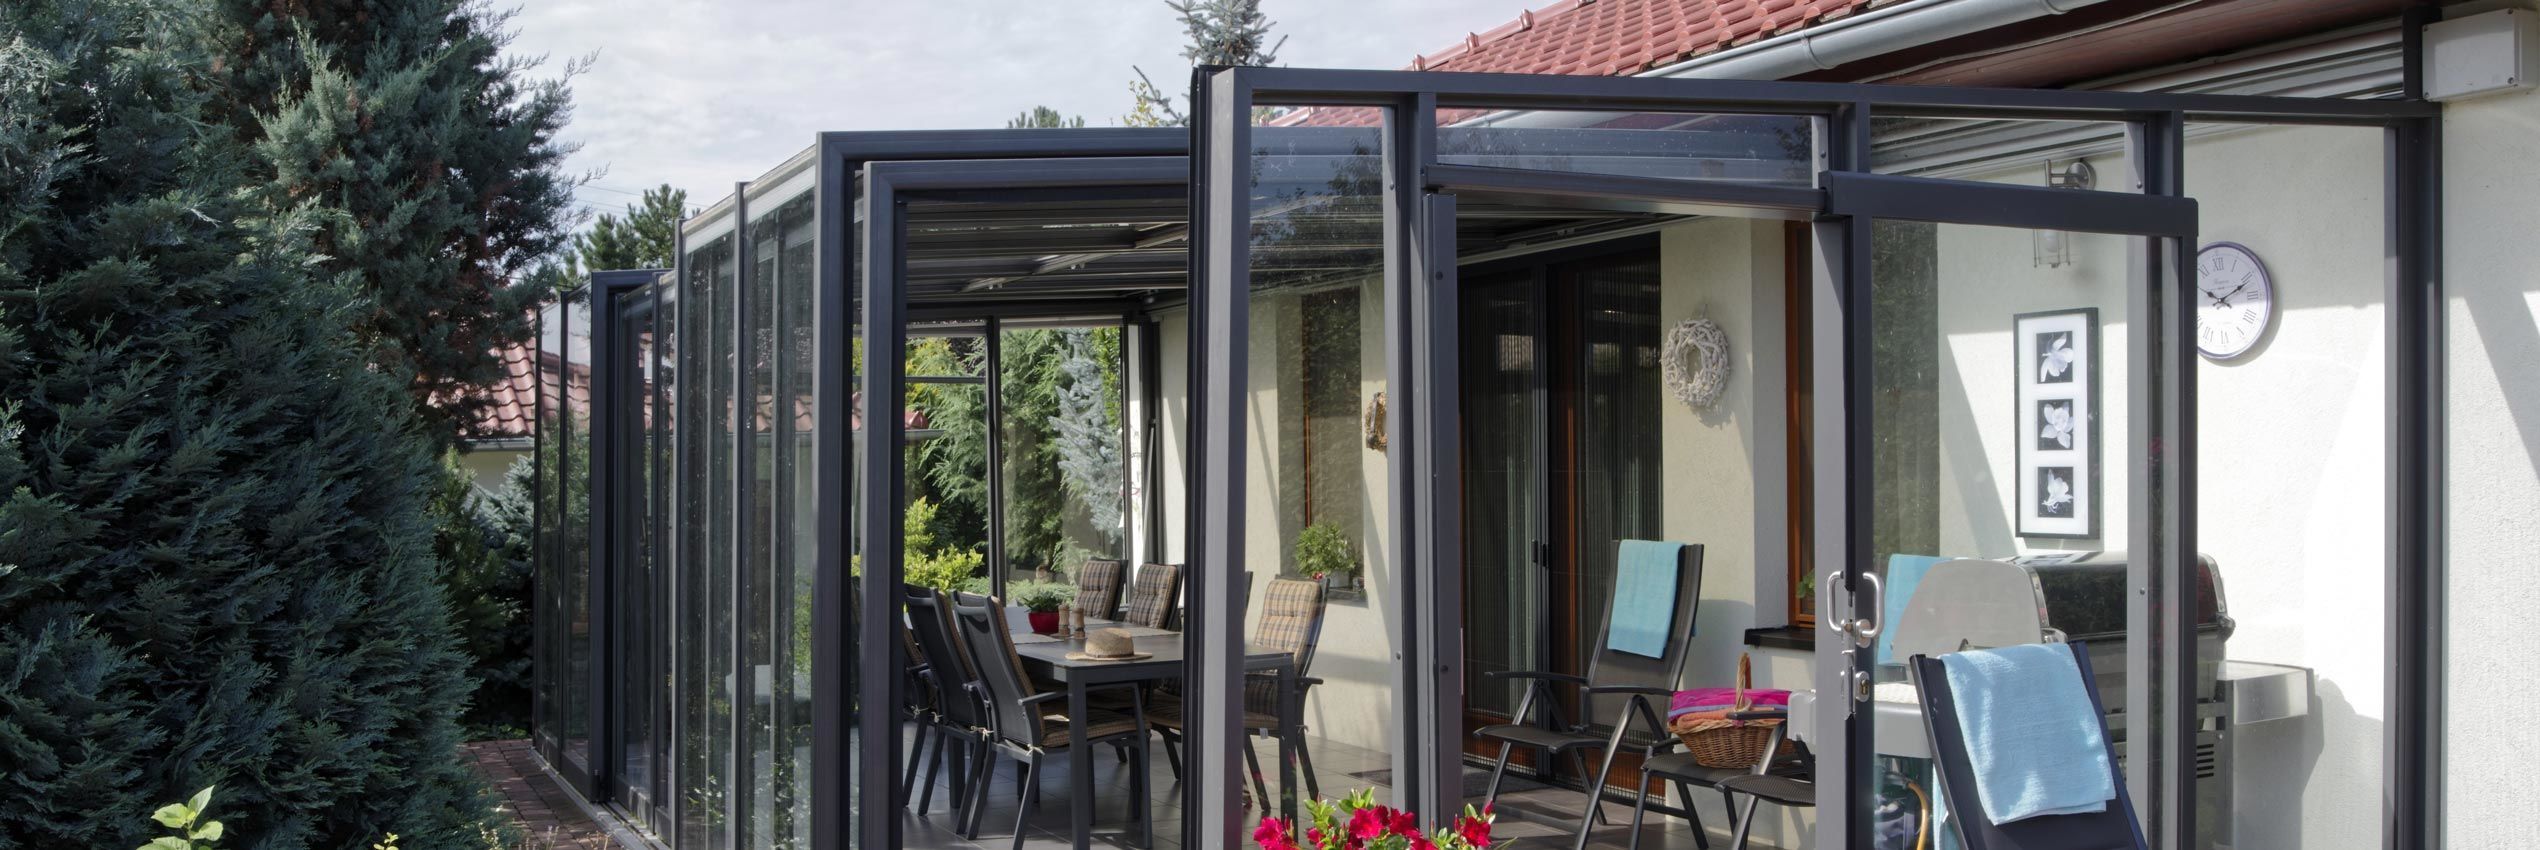 Semi opened patio enclosure Corso glass